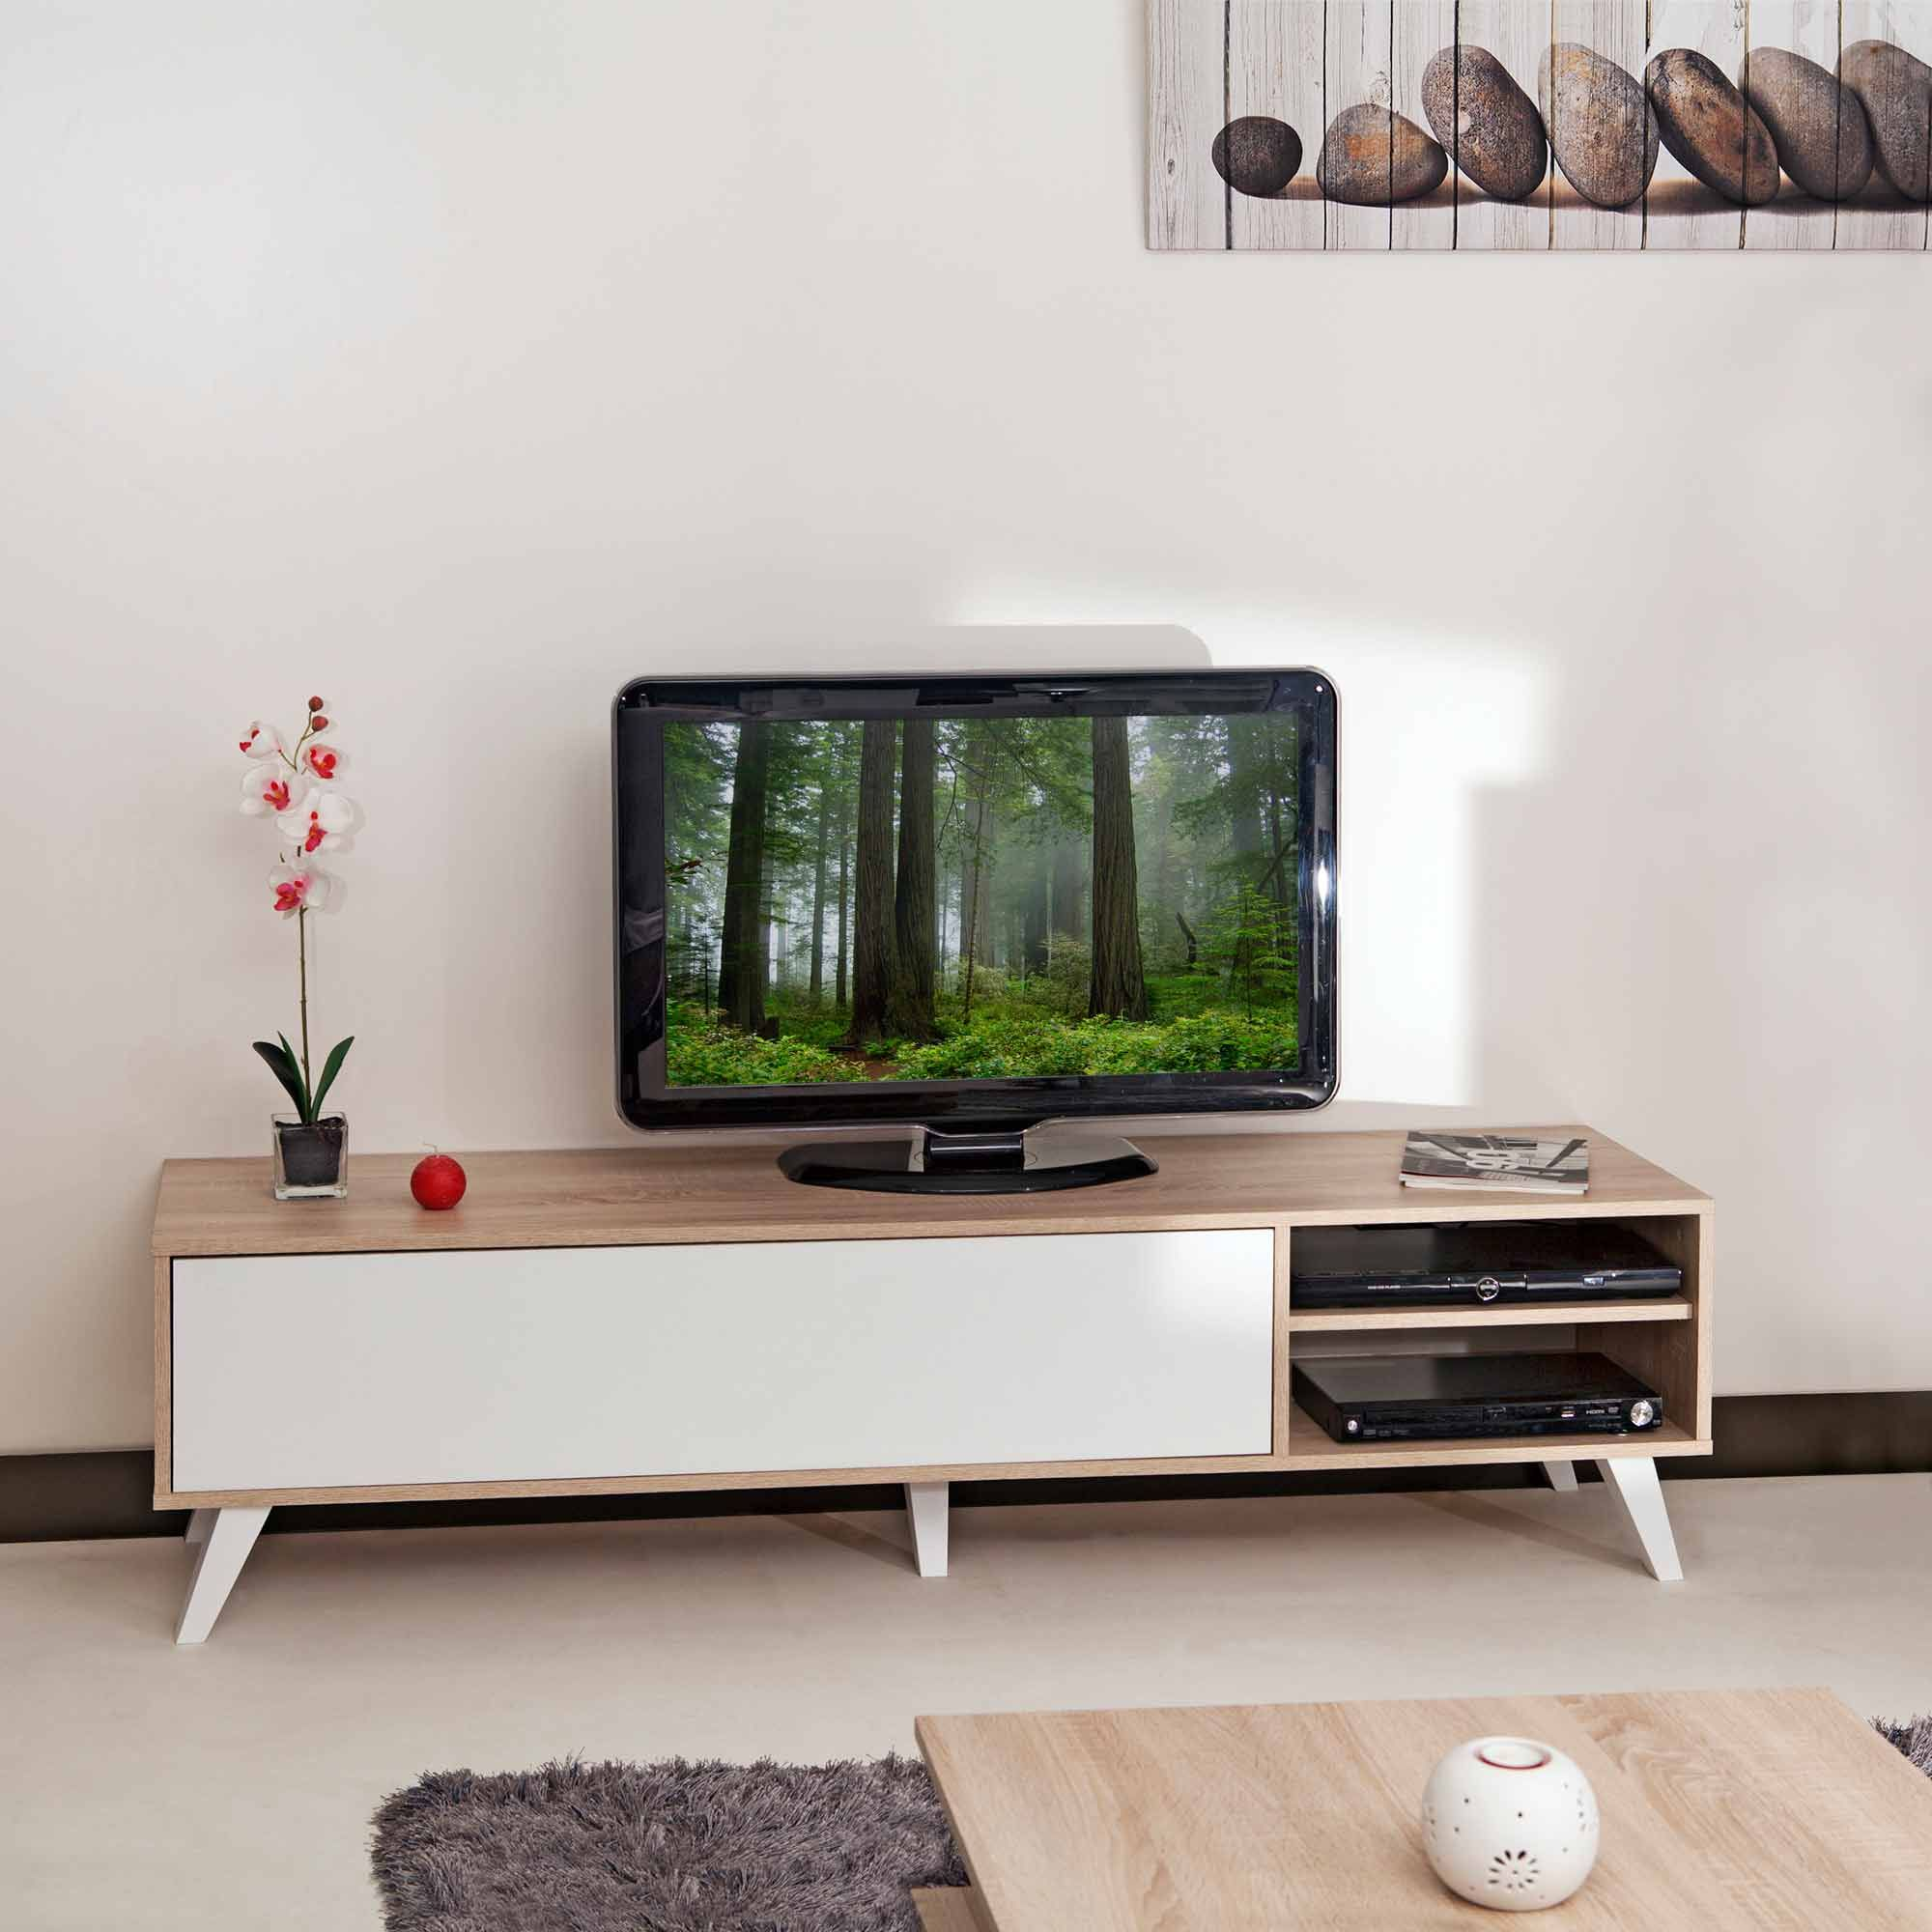 meuble tv bas avec 1 abattant et 2 niches torsten port offert meuble tv pinterest. Black Bedroom Furniture Sets. Home Design Ideas